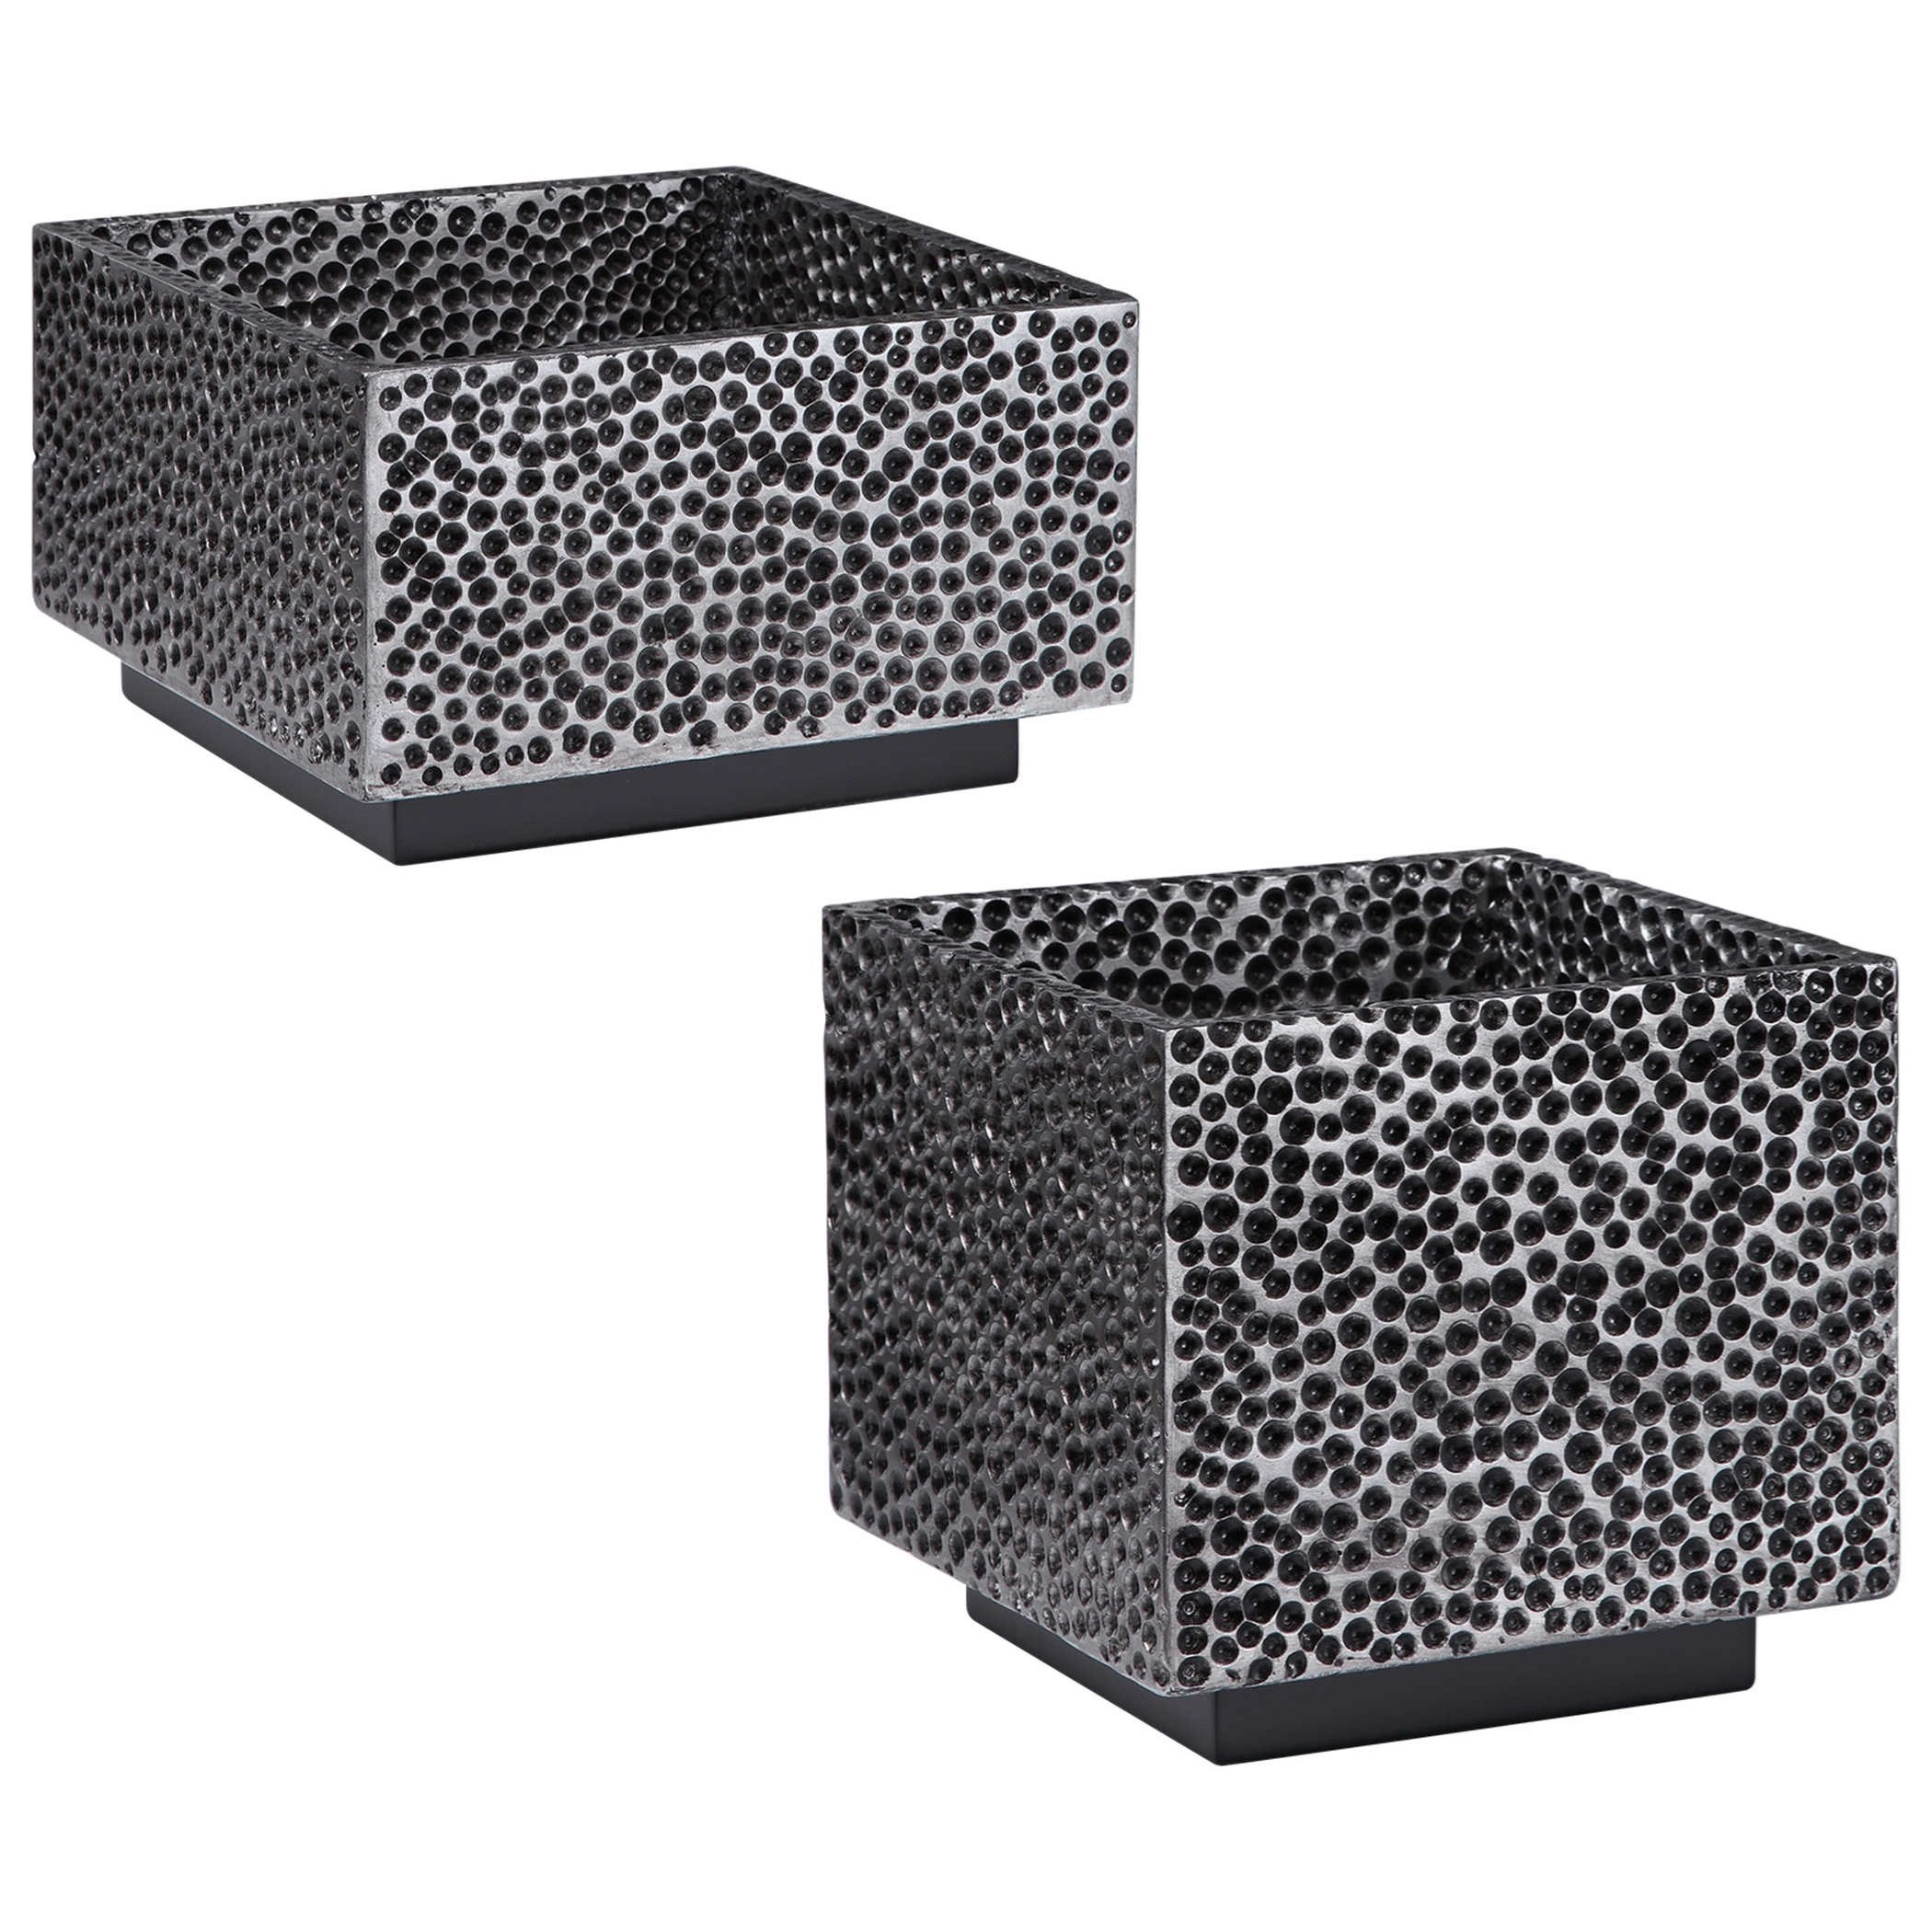 Accessories Bram Modern Square Bowls, S/2 by Uttermost at Mueller Furniture